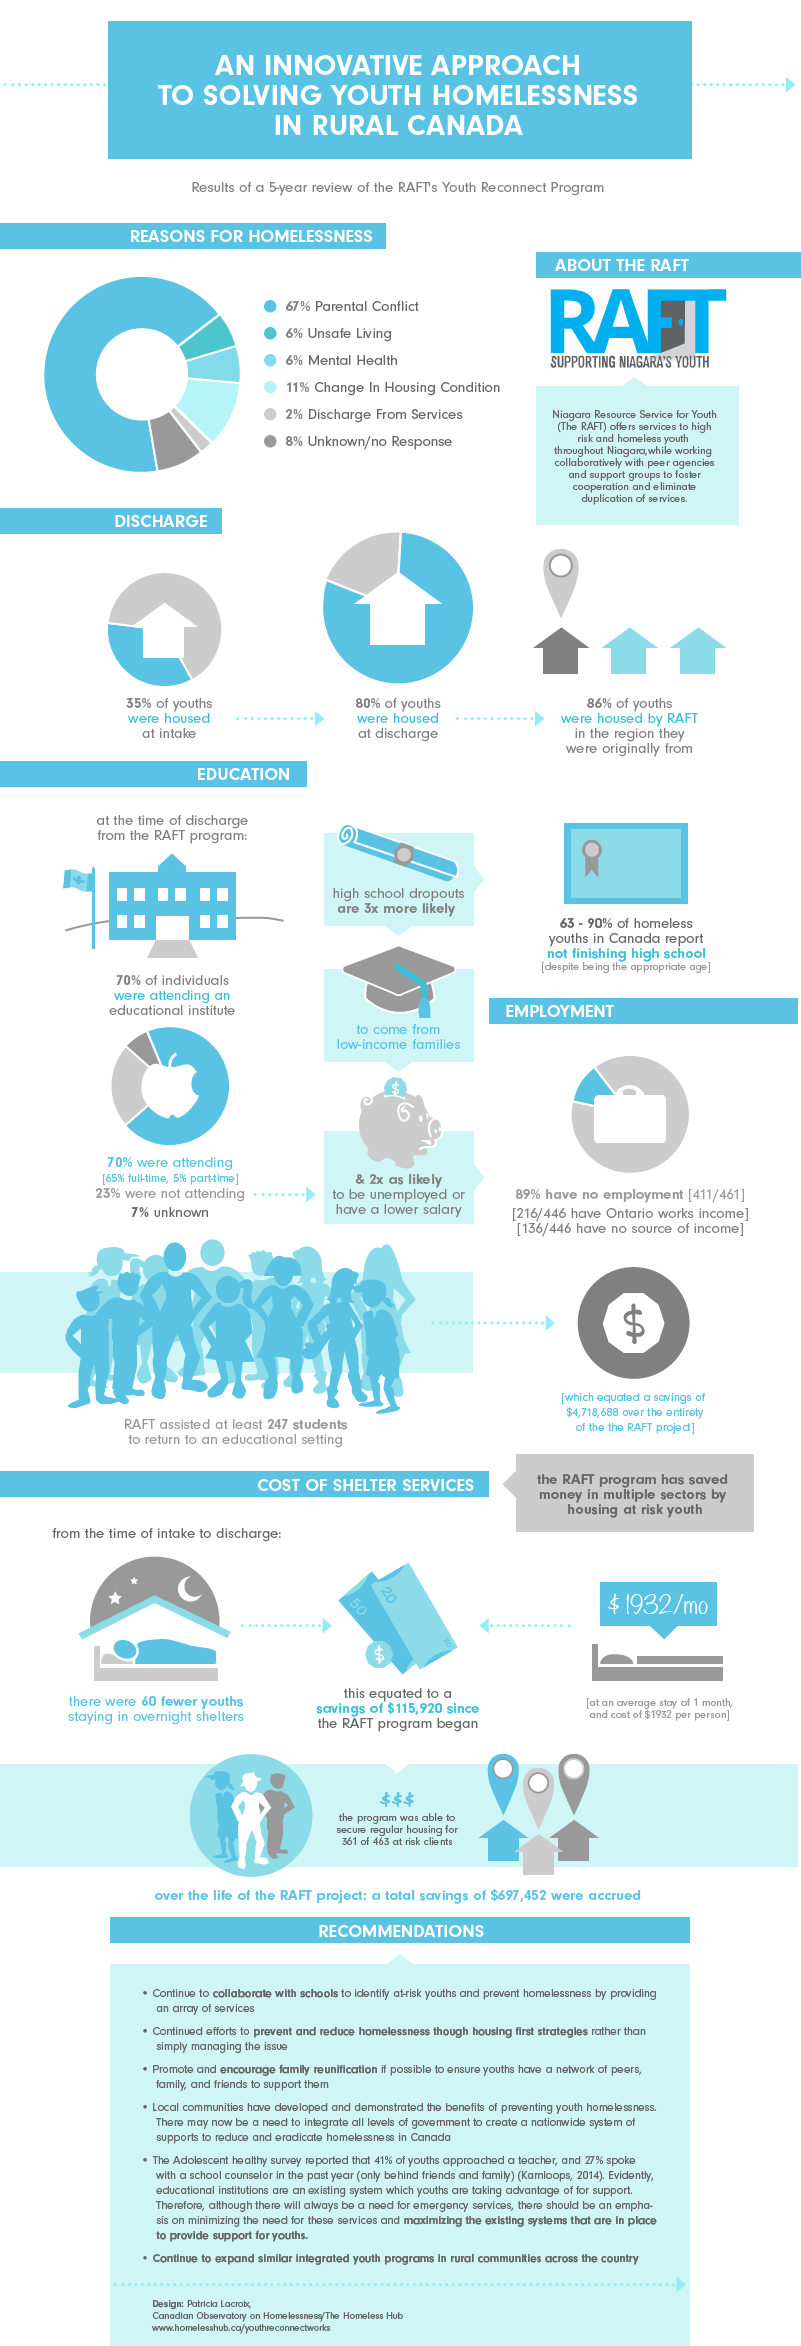 An innovative approach to solving youth homelessness in rural Canada: Results of a 5-year review of the RAFT's Youth Reconnect Program